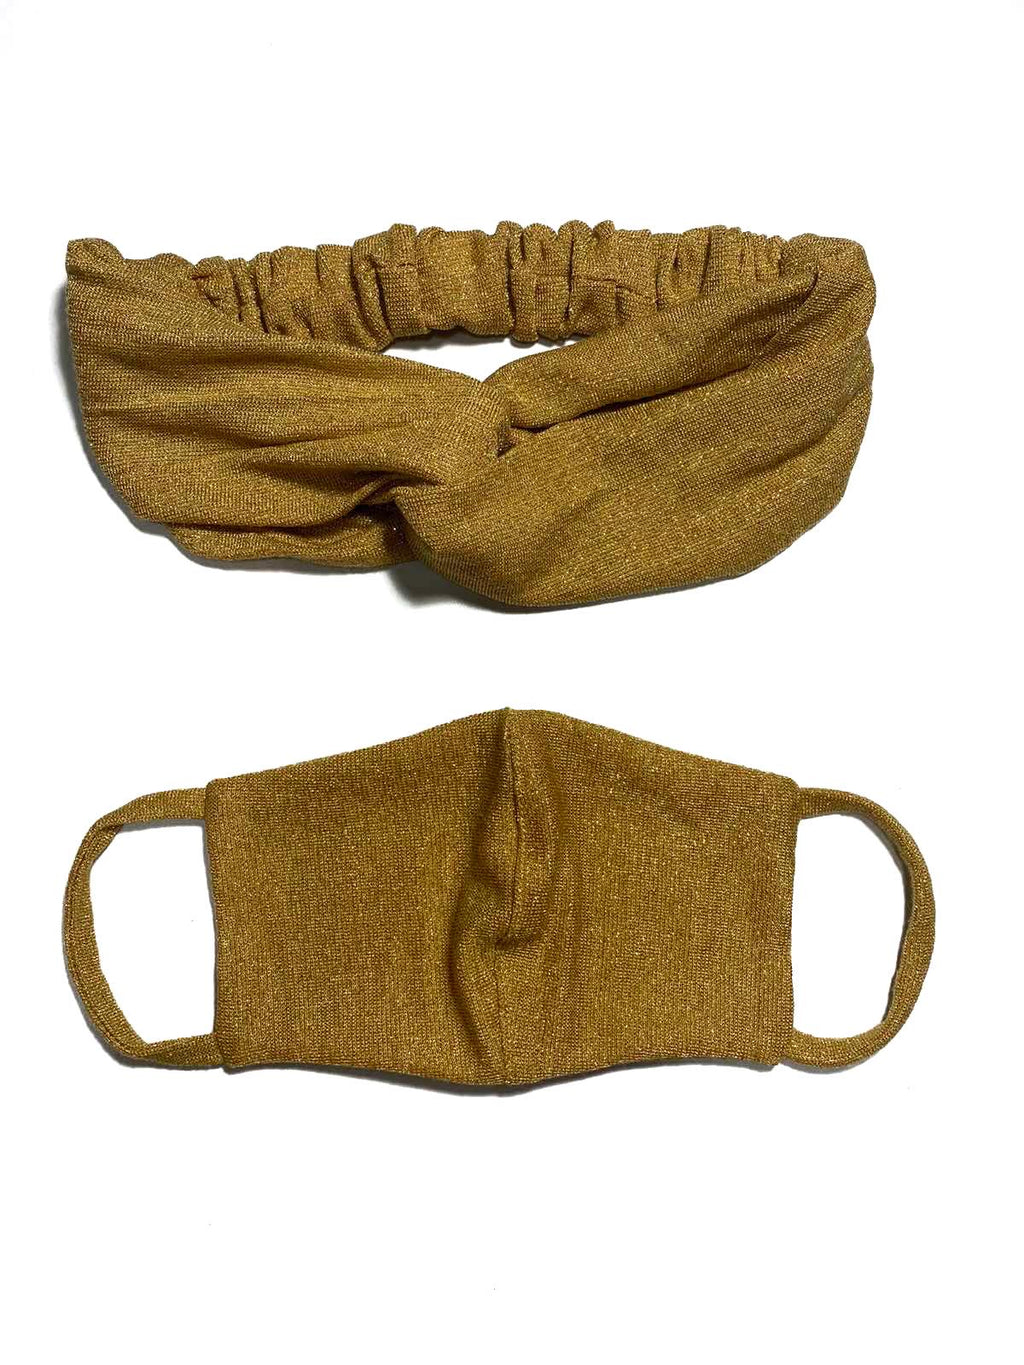 REUSABLE HEADBAND AND MASK- GOLD